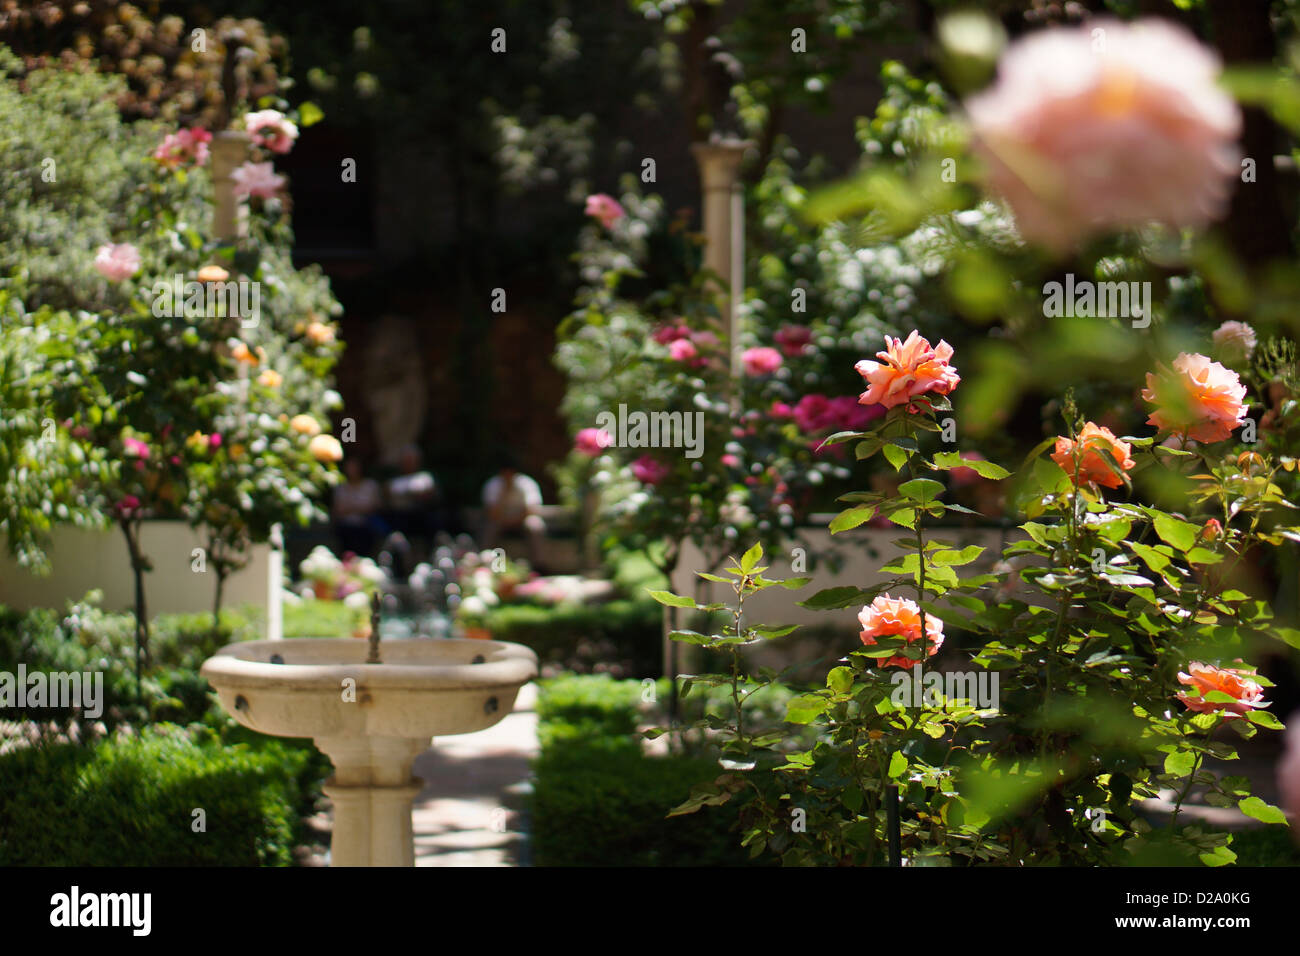 Museo Sorolla Madrid.Museo Sorolla Madrid Spain Museum Garden Rose Stock Photo 53080484